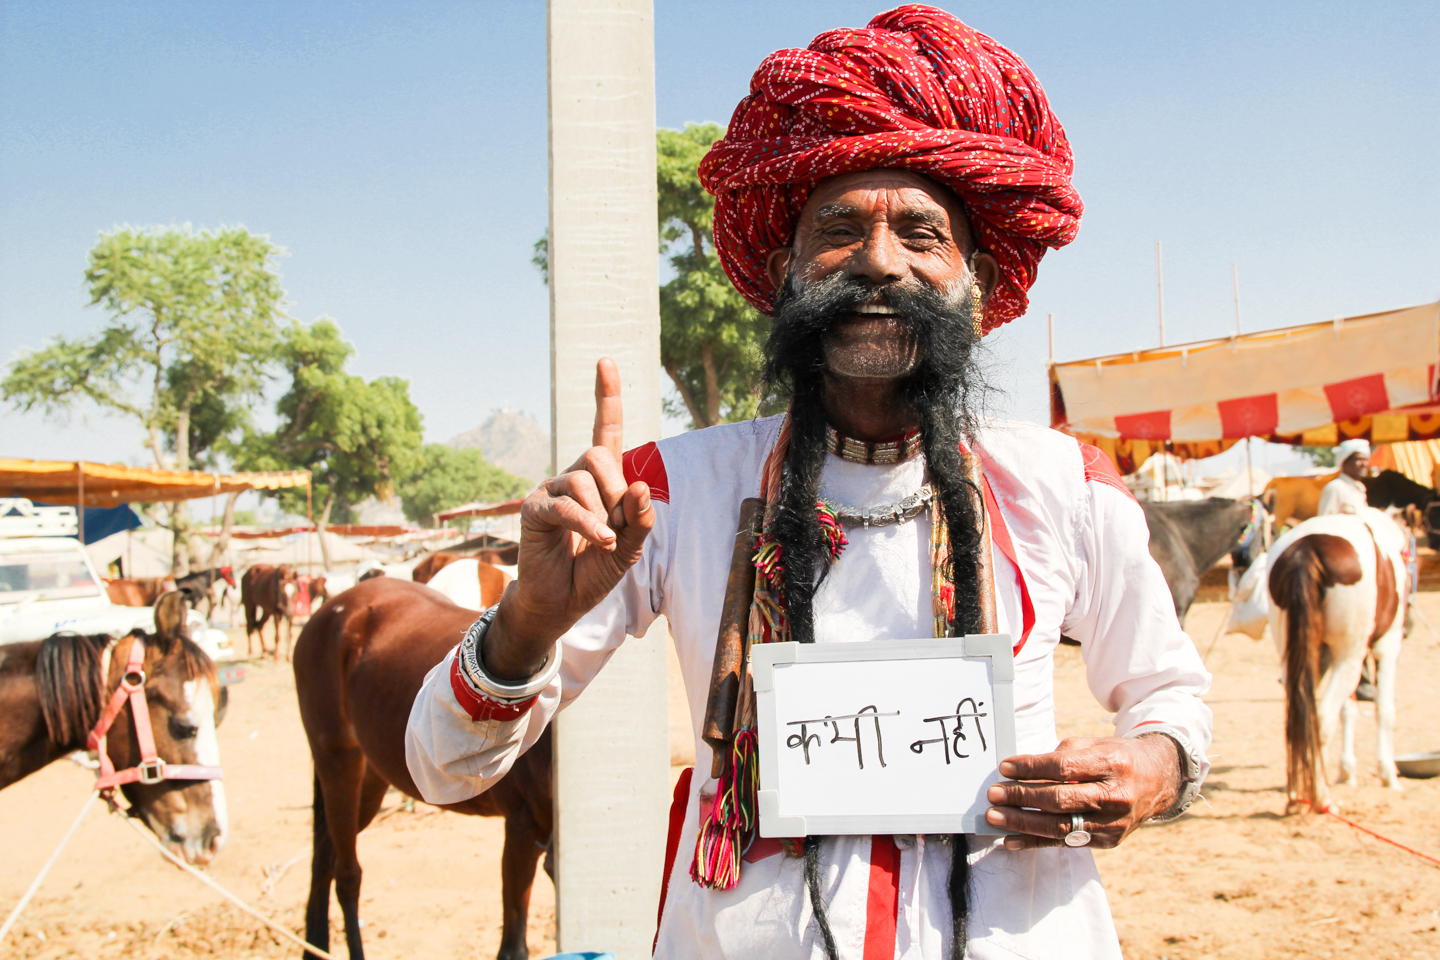 Ramnath Chaudhary from Padampara, Jaipur, never drinks chai - only water. He has been growing his mustache for 45 years and claims it is the longest in the world.